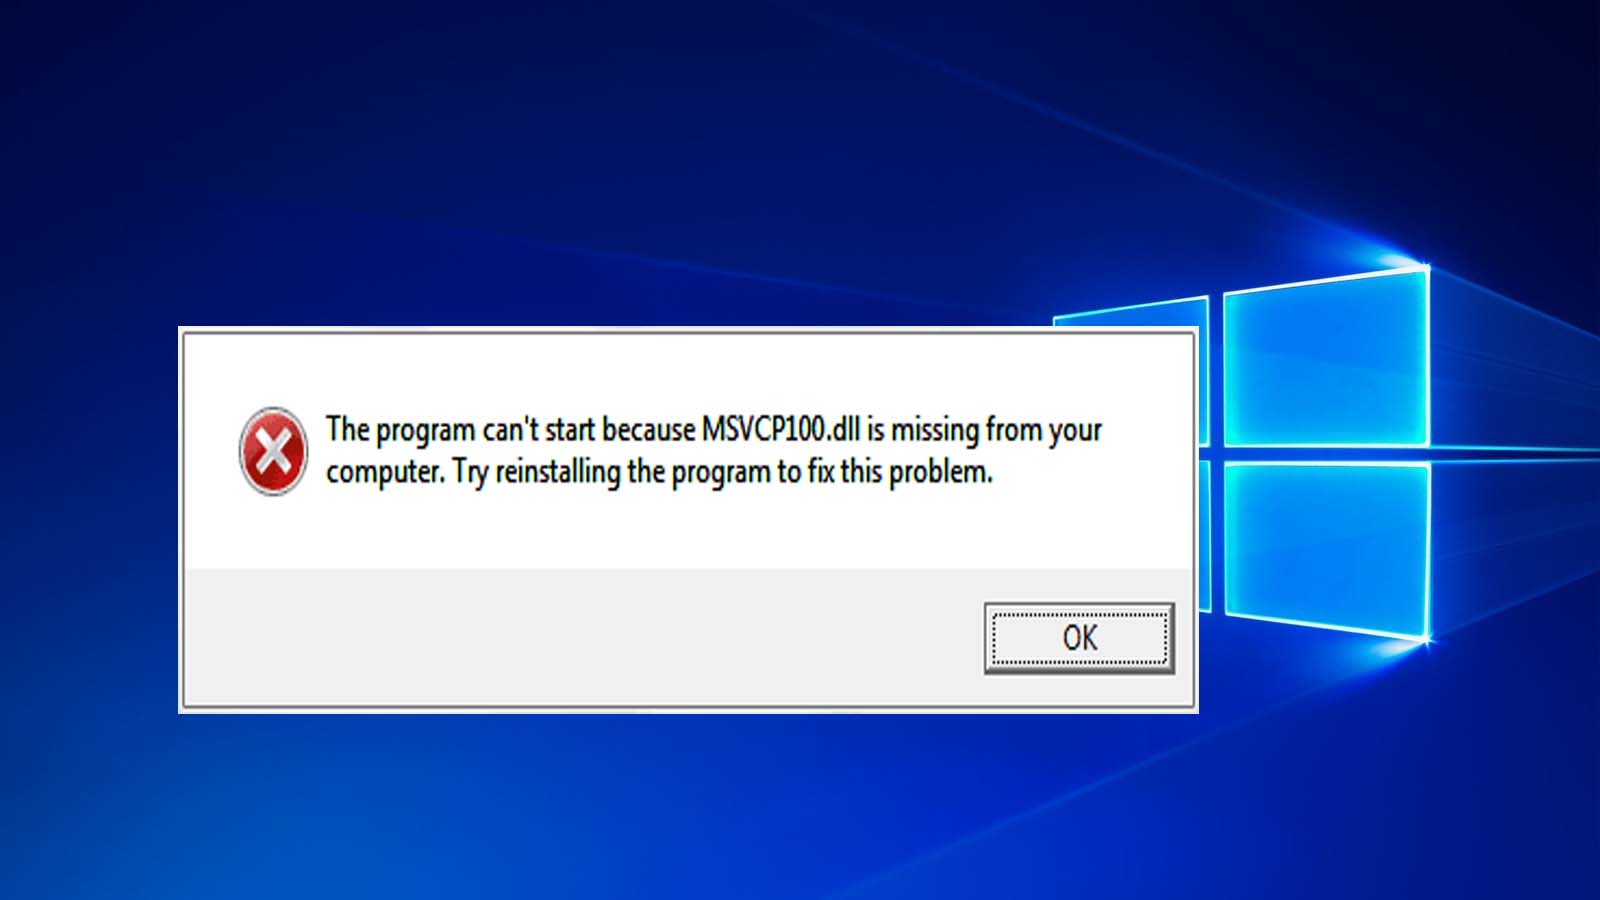 Fix Msvcp100.dll error